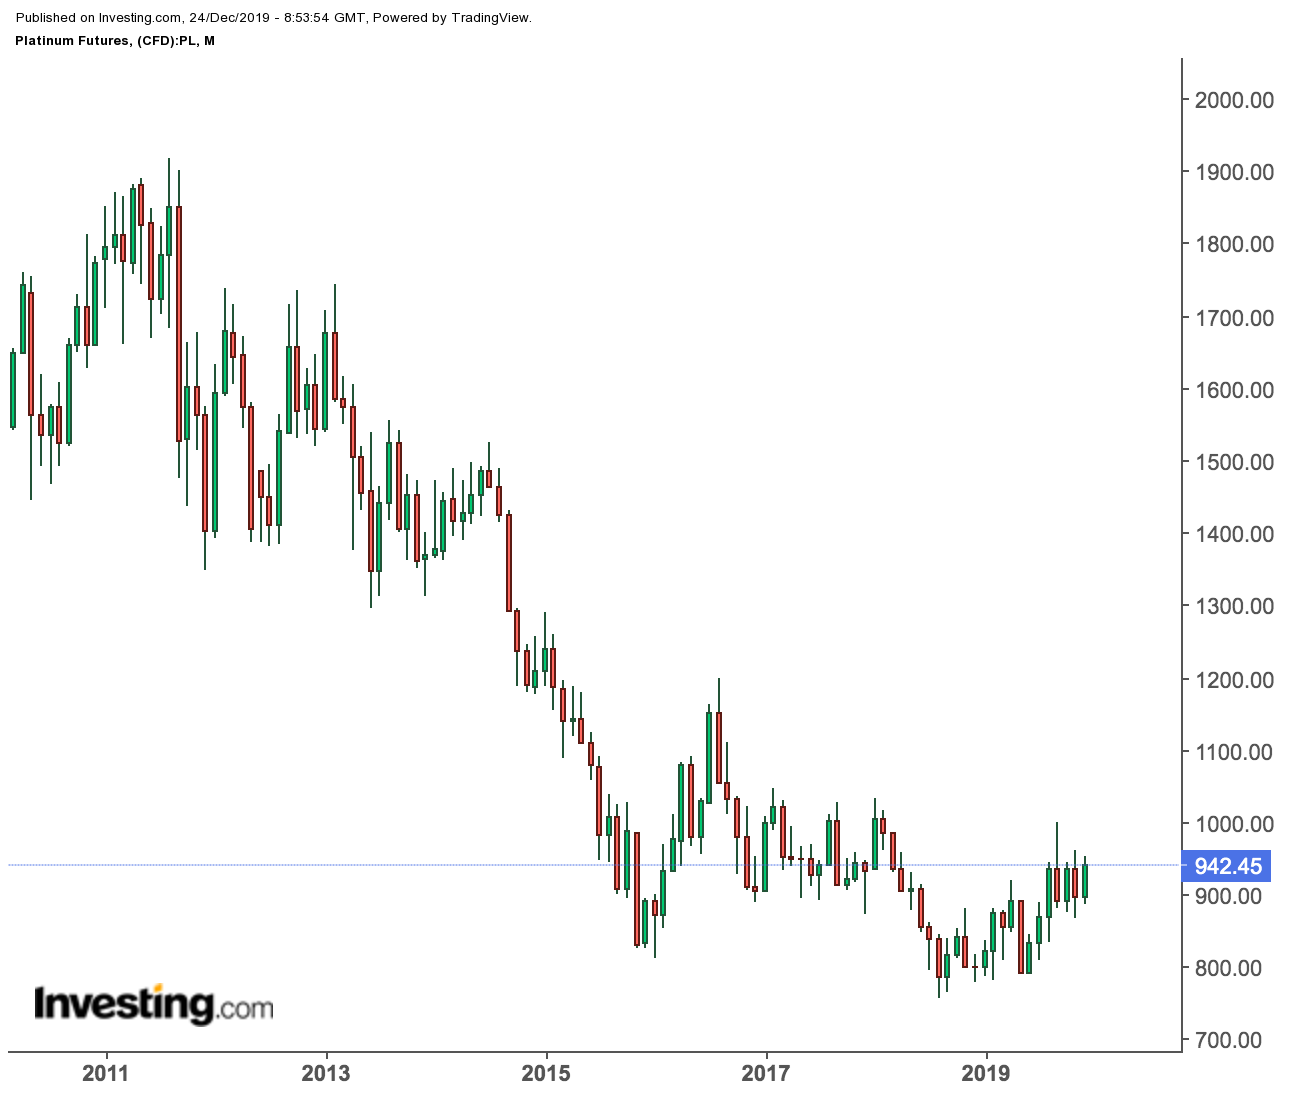 Platinum Futures Monthly Chart